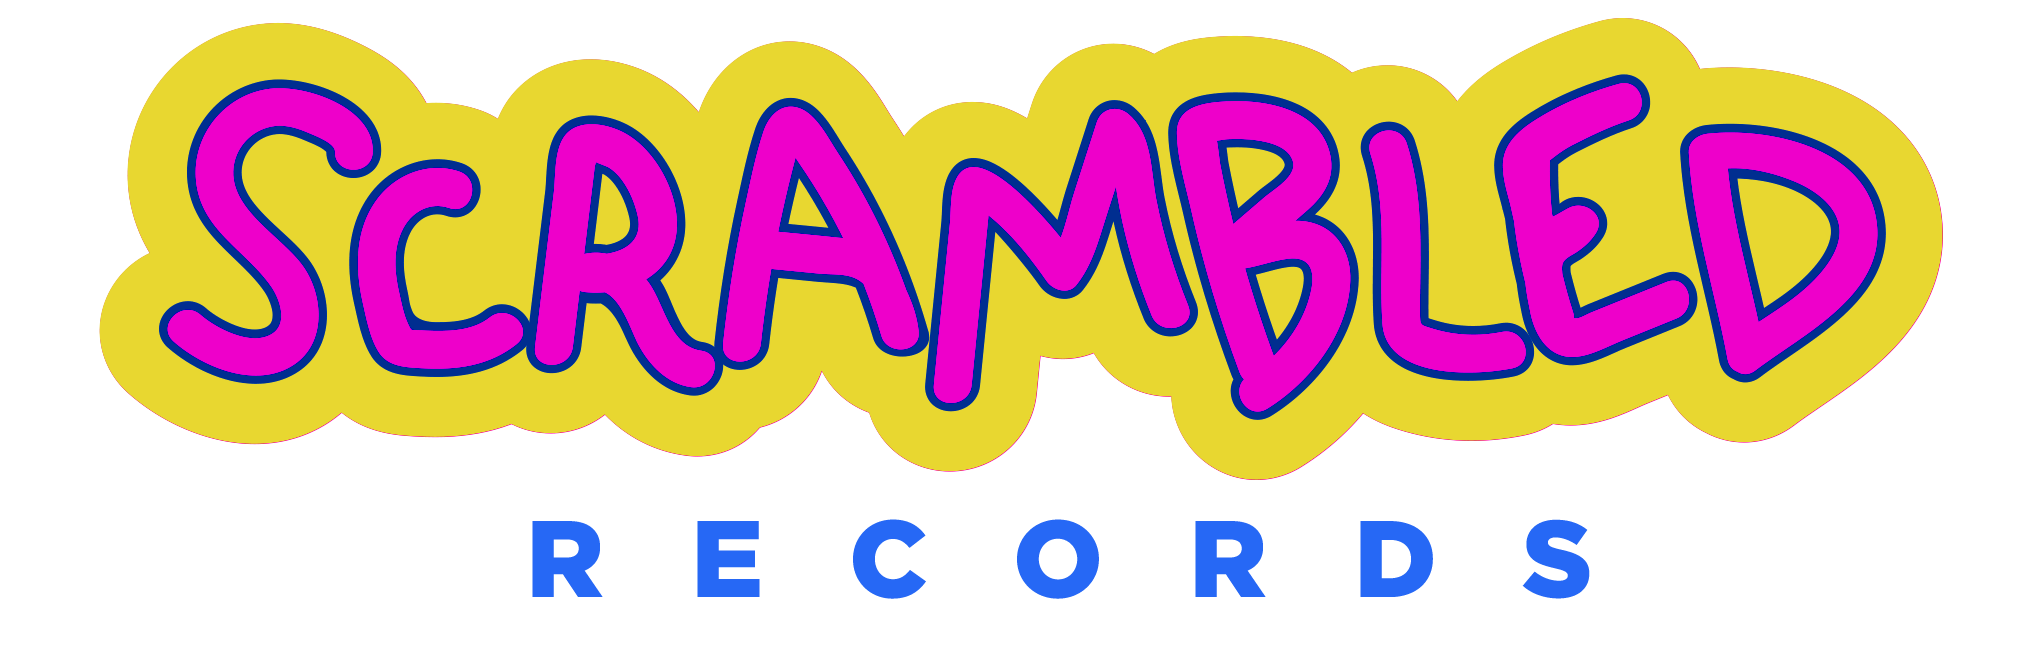 Home scrambled records logo. Yelling clipart express yourself